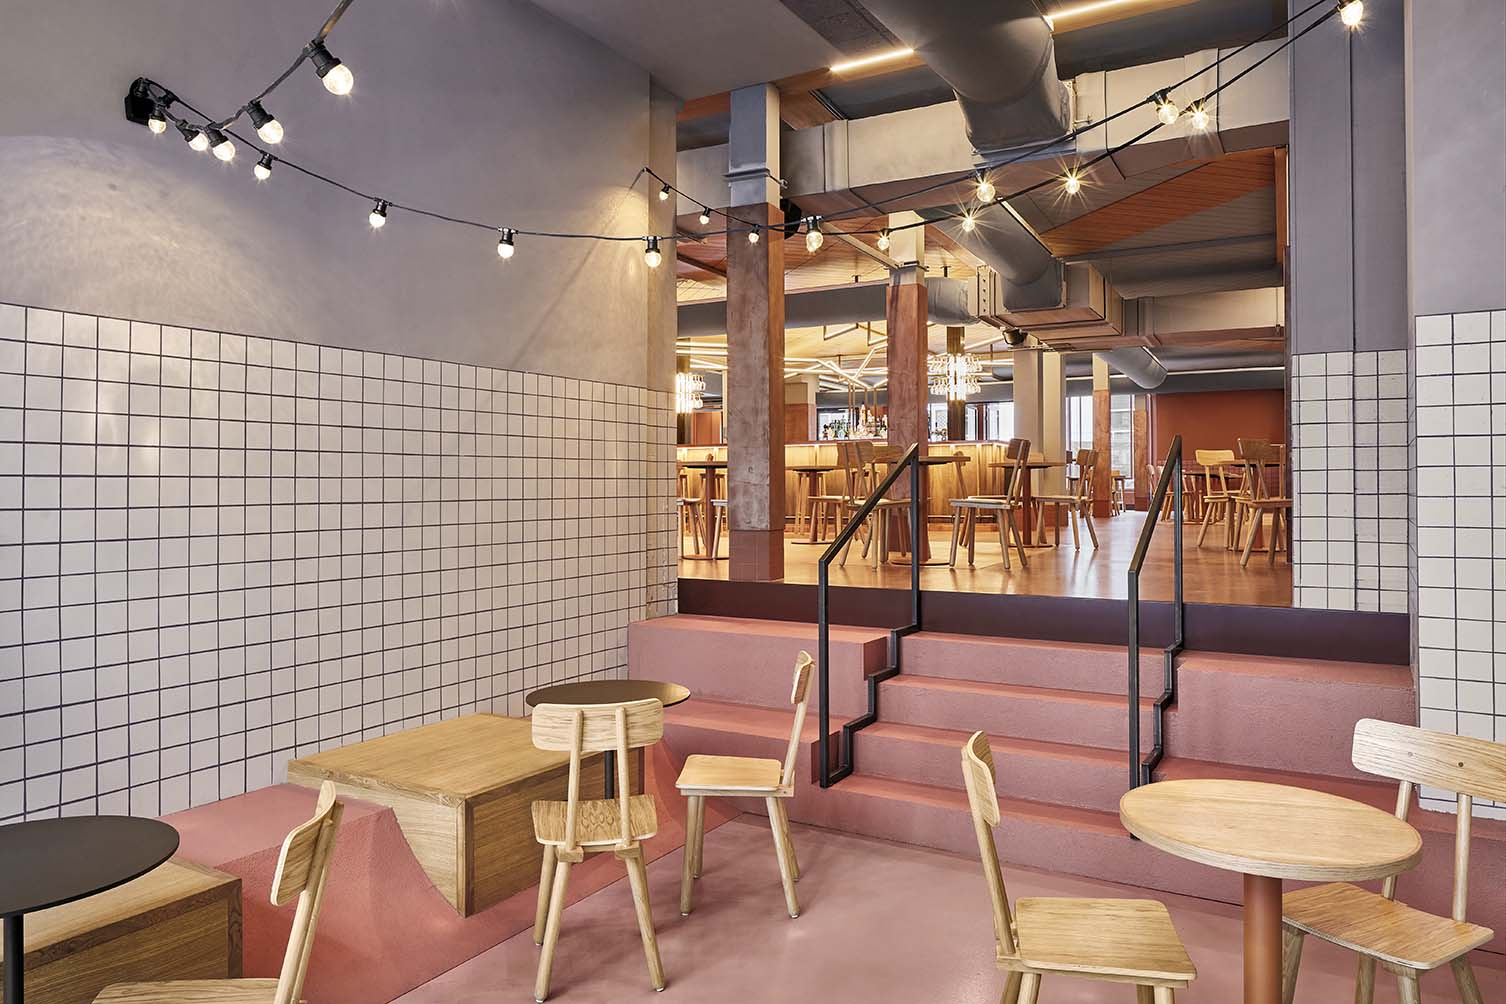 Interior Design Studio Amsterdam foodhallen den haag follows on successes in amsterdam and